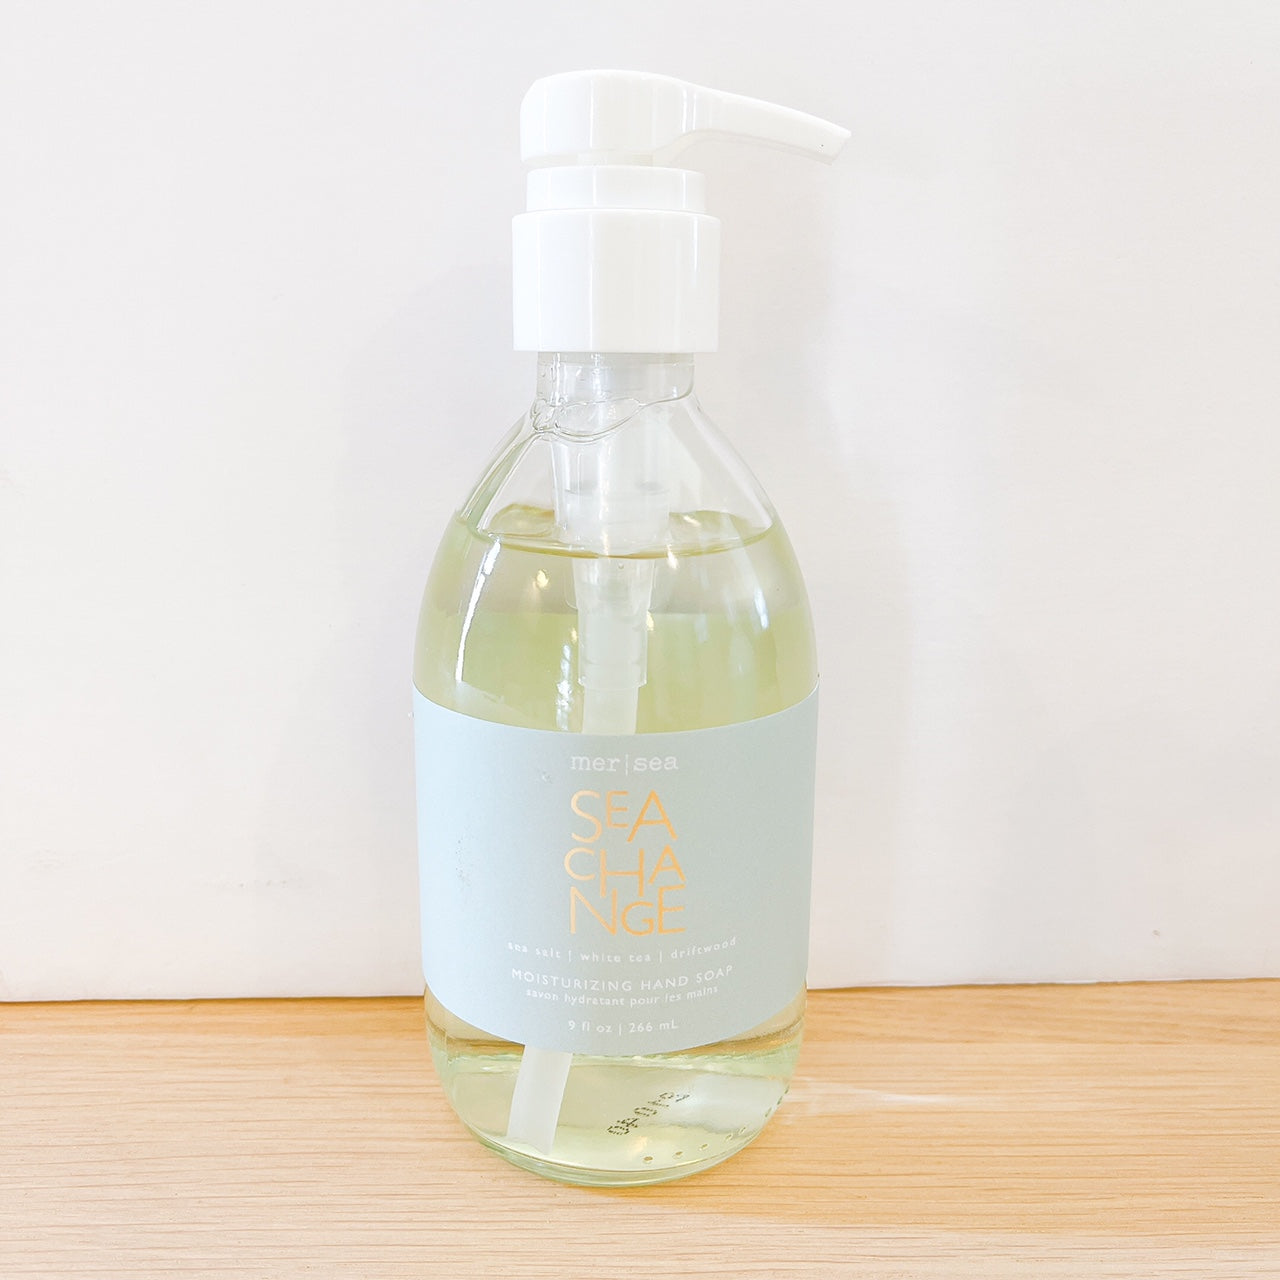 Sea Change Hand Soap